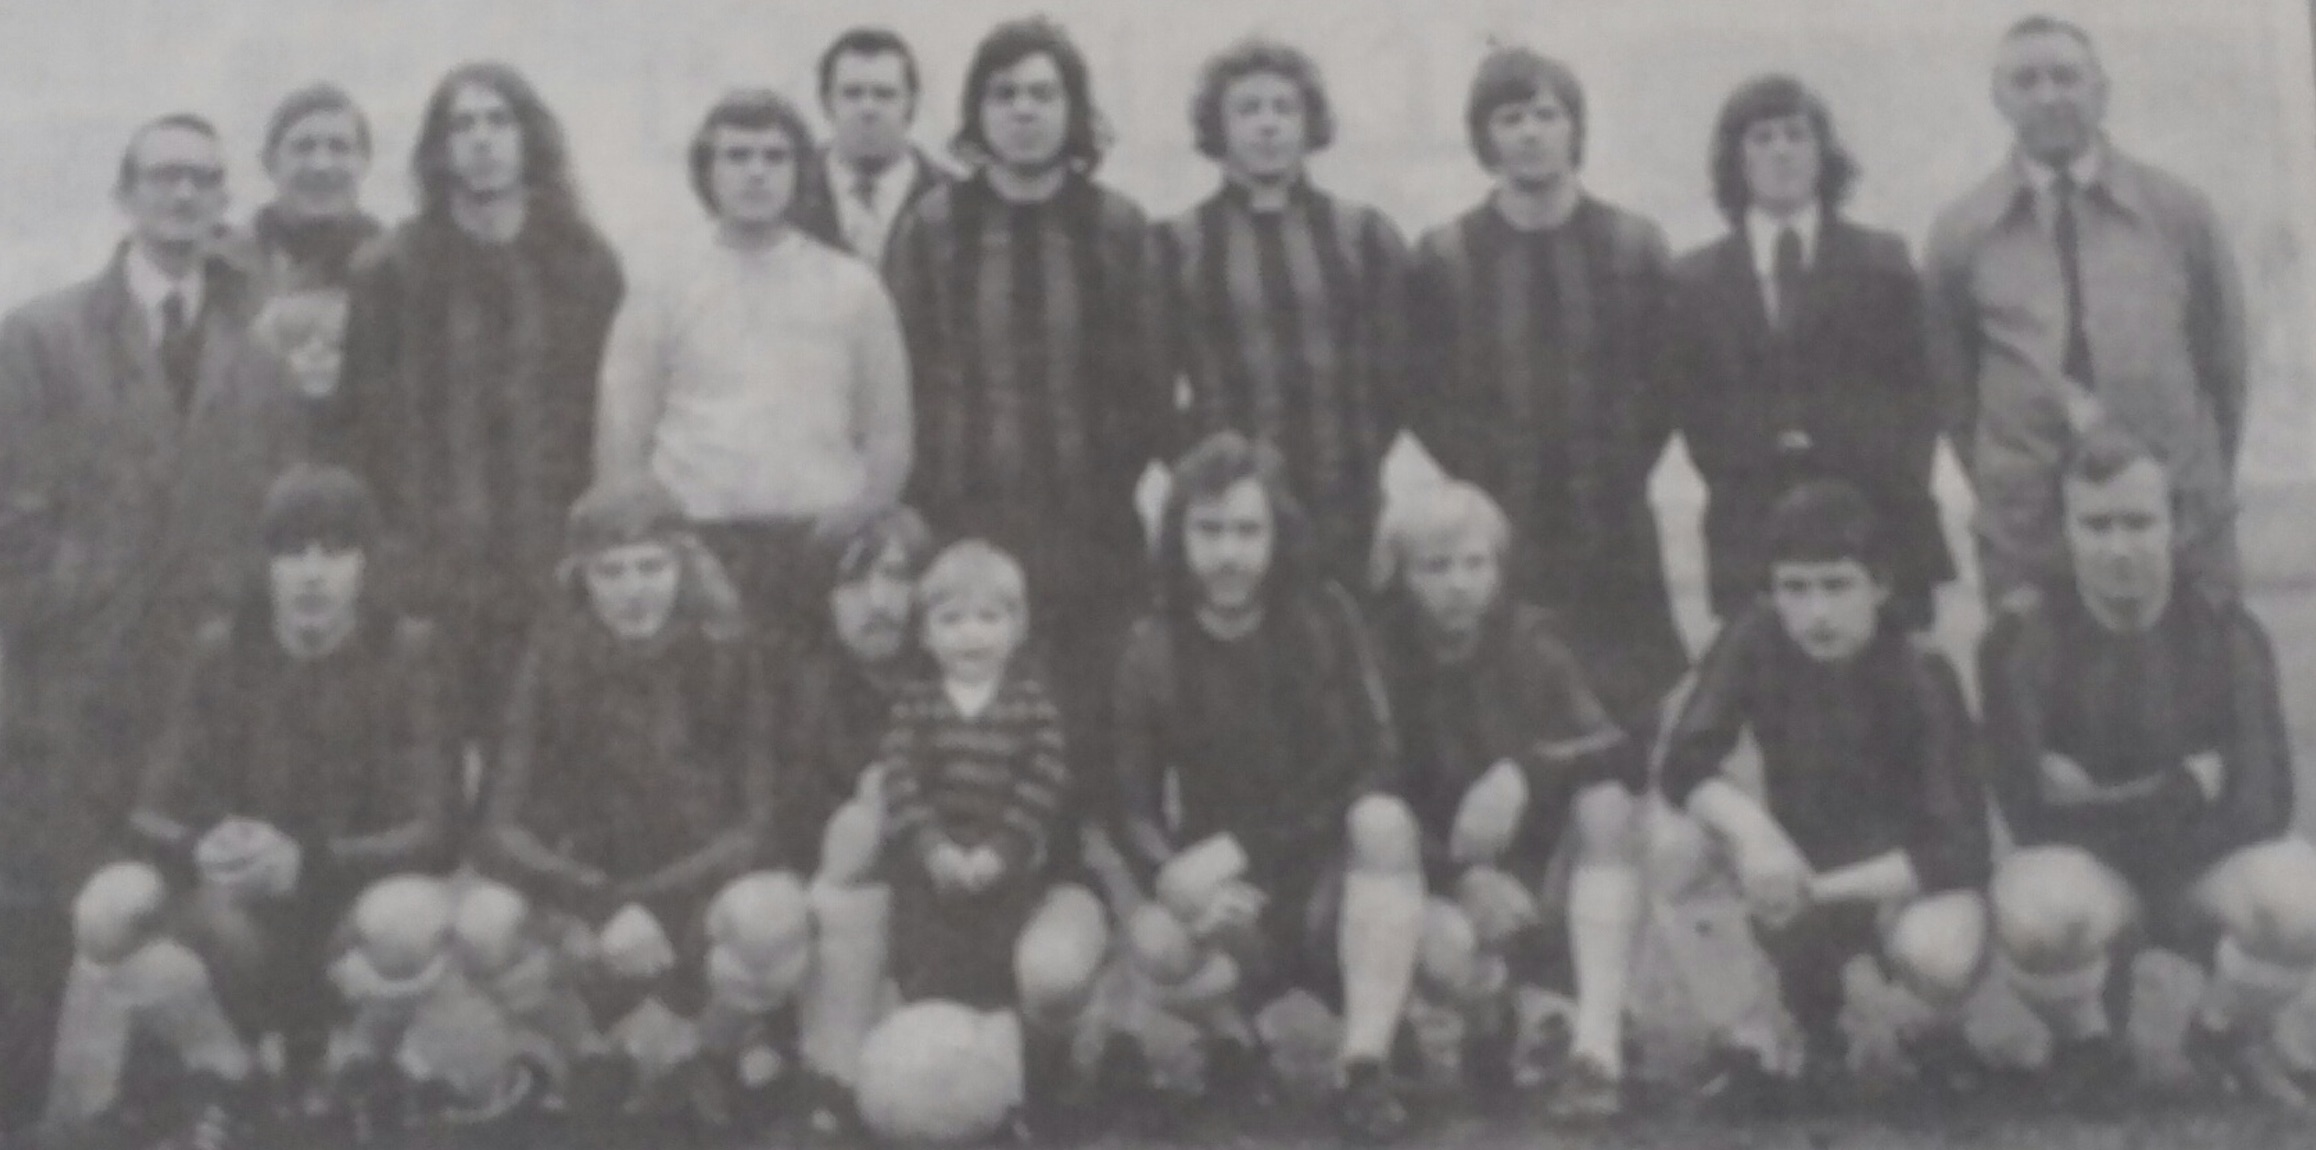 Man of Trent 1973 Back A Rowley(Chairman)M Robinson(Manager) A Rowley, B Arnold, G Parkes(Trainer)P Palmer, D Wragg, A Birchenall, J Hawley,DH Roe(Secretary) Front D Binch S Binch D Jeffrey P King M Green S Rowley T Rowley P Jeffrey(mascot)